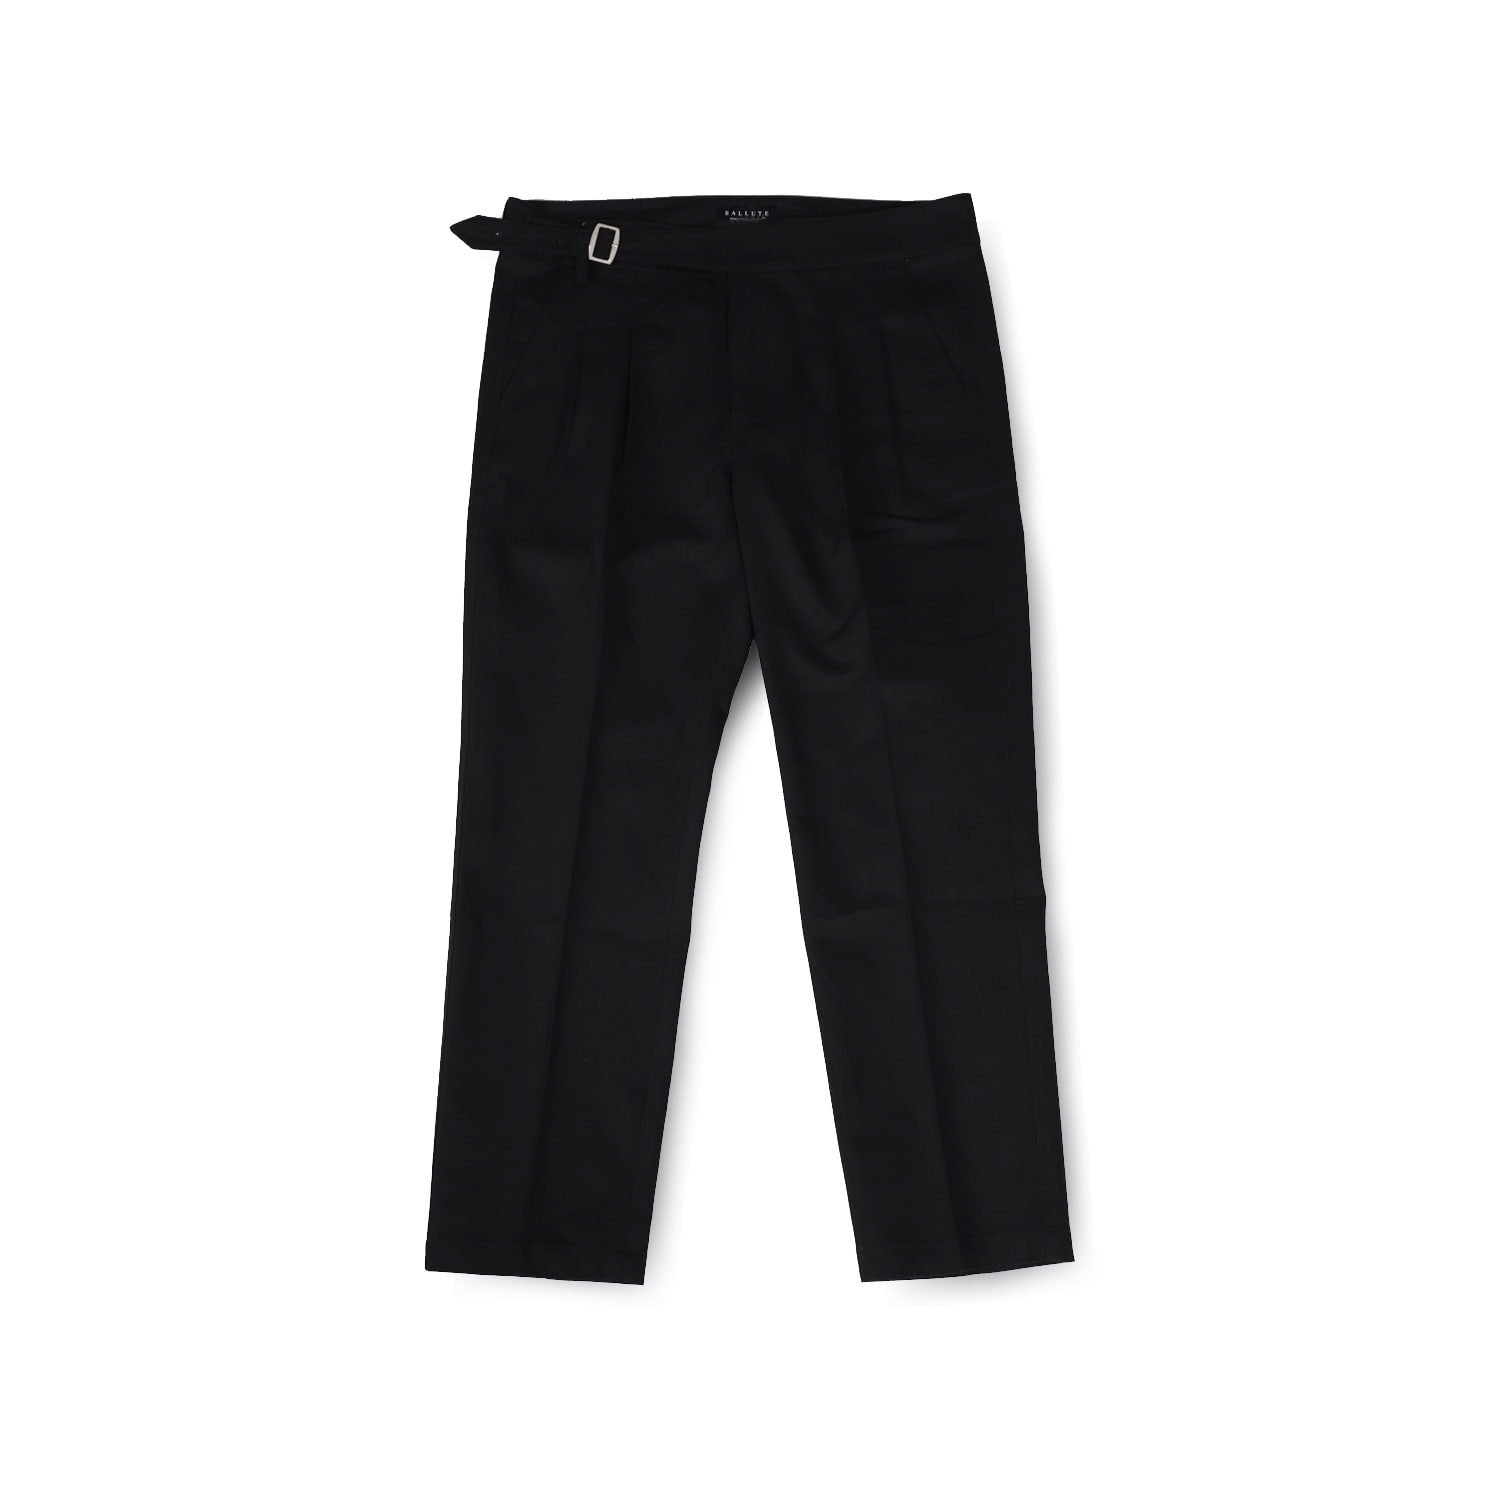 MAGAZINE SINGLE GURKHA PANTS (COTTON)